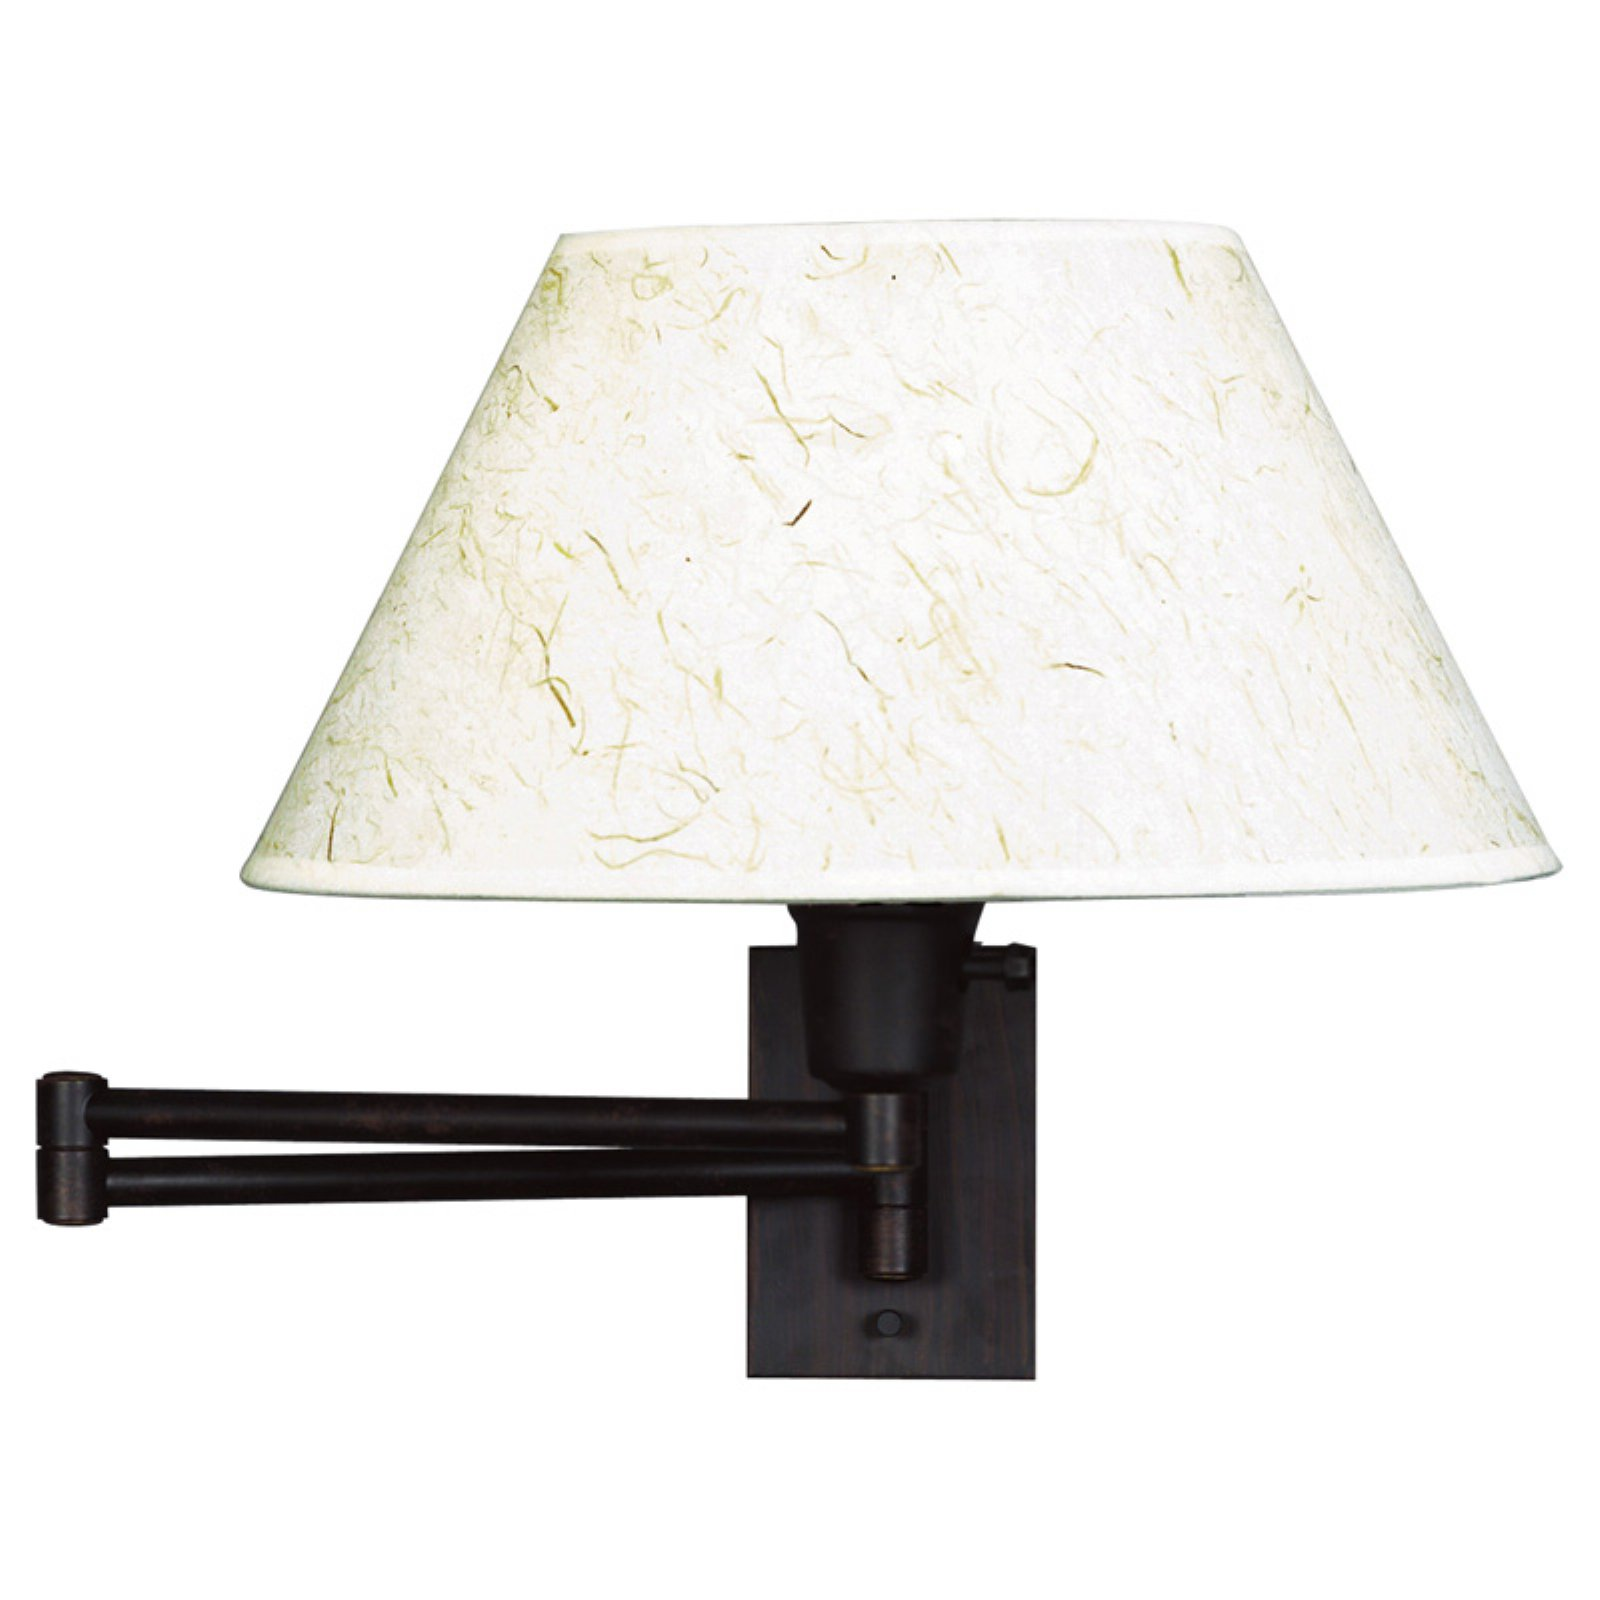 Kenroy Home Simplicity Wall Swing Arm Lamp 16W in. Bronze by Kenroy Home